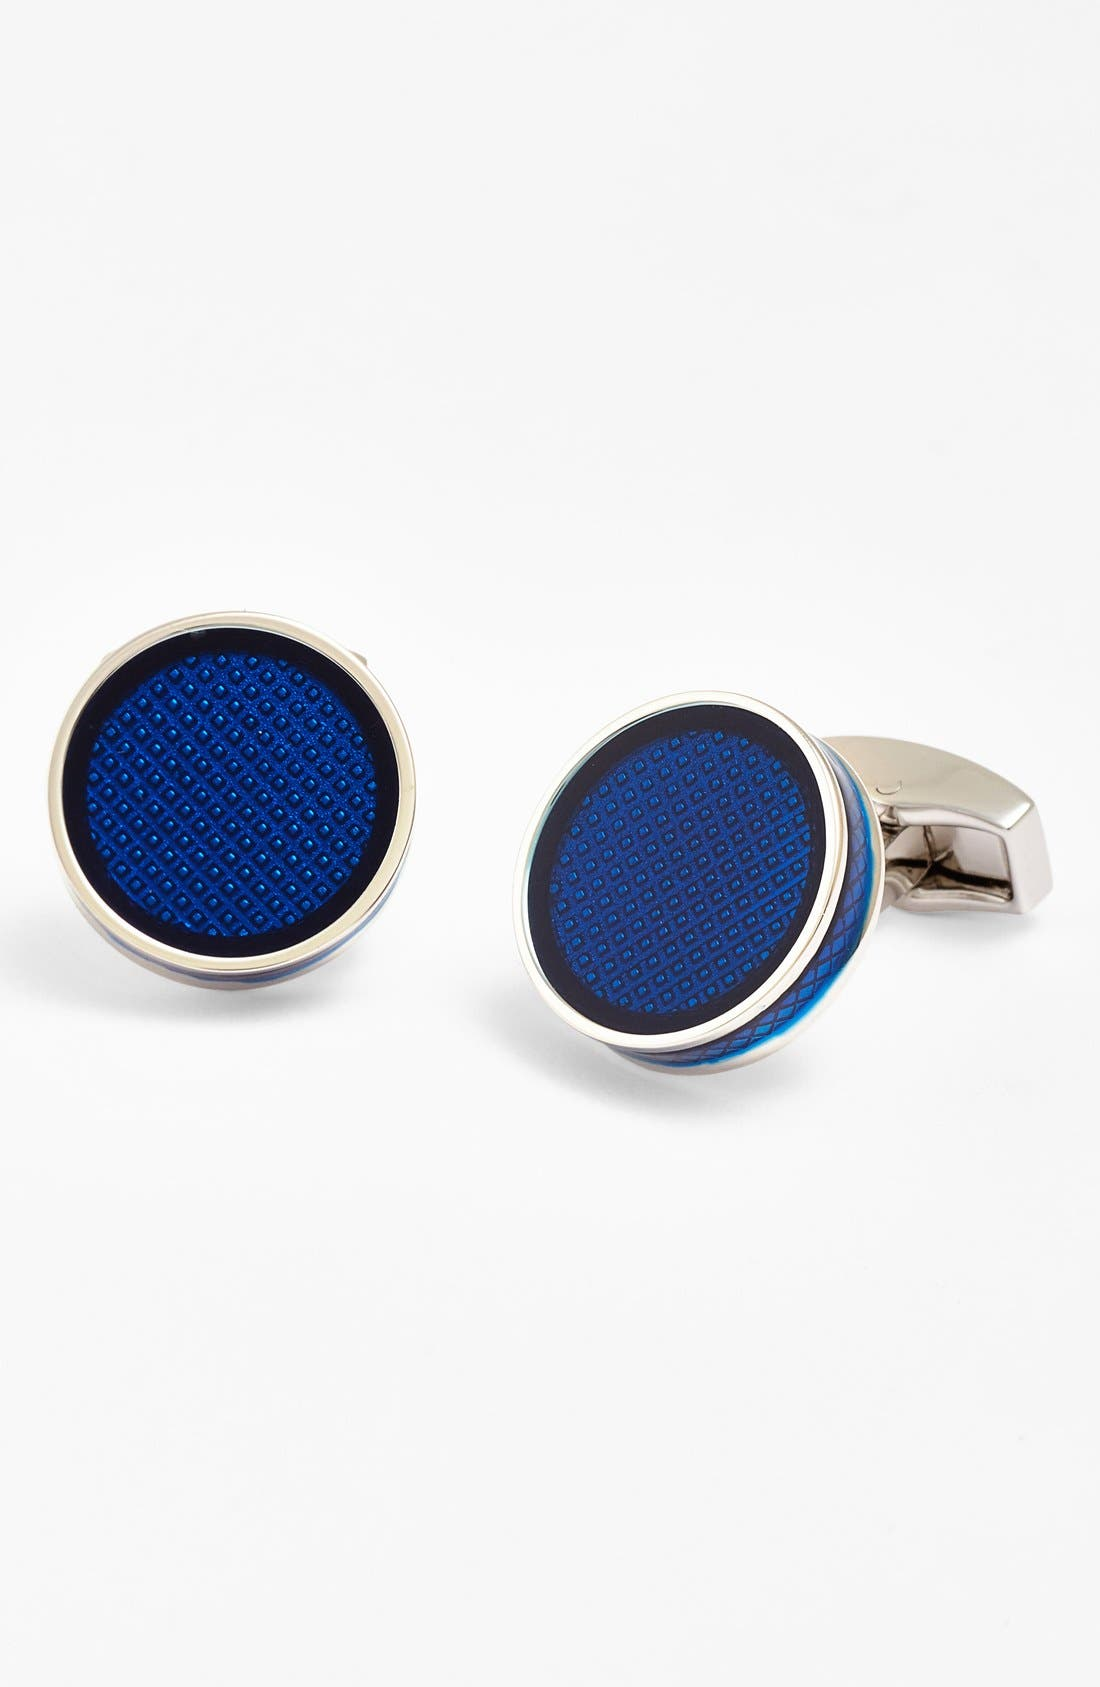 Enamel Tablet Cuff Links,                             Main thumbnail 1, color,                             040